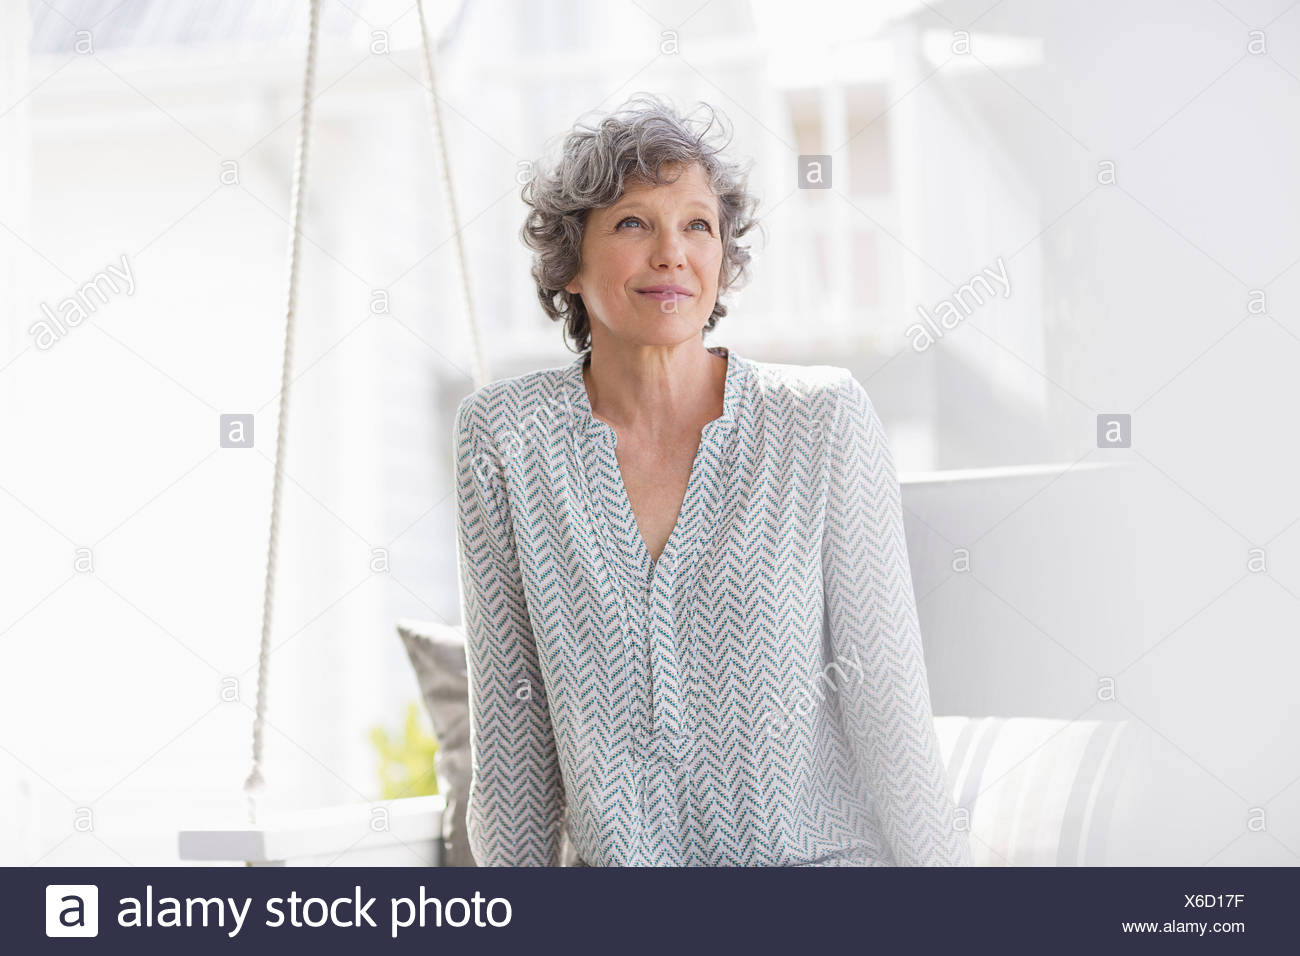 Woman sitting on a swing and thinking - Stock Image